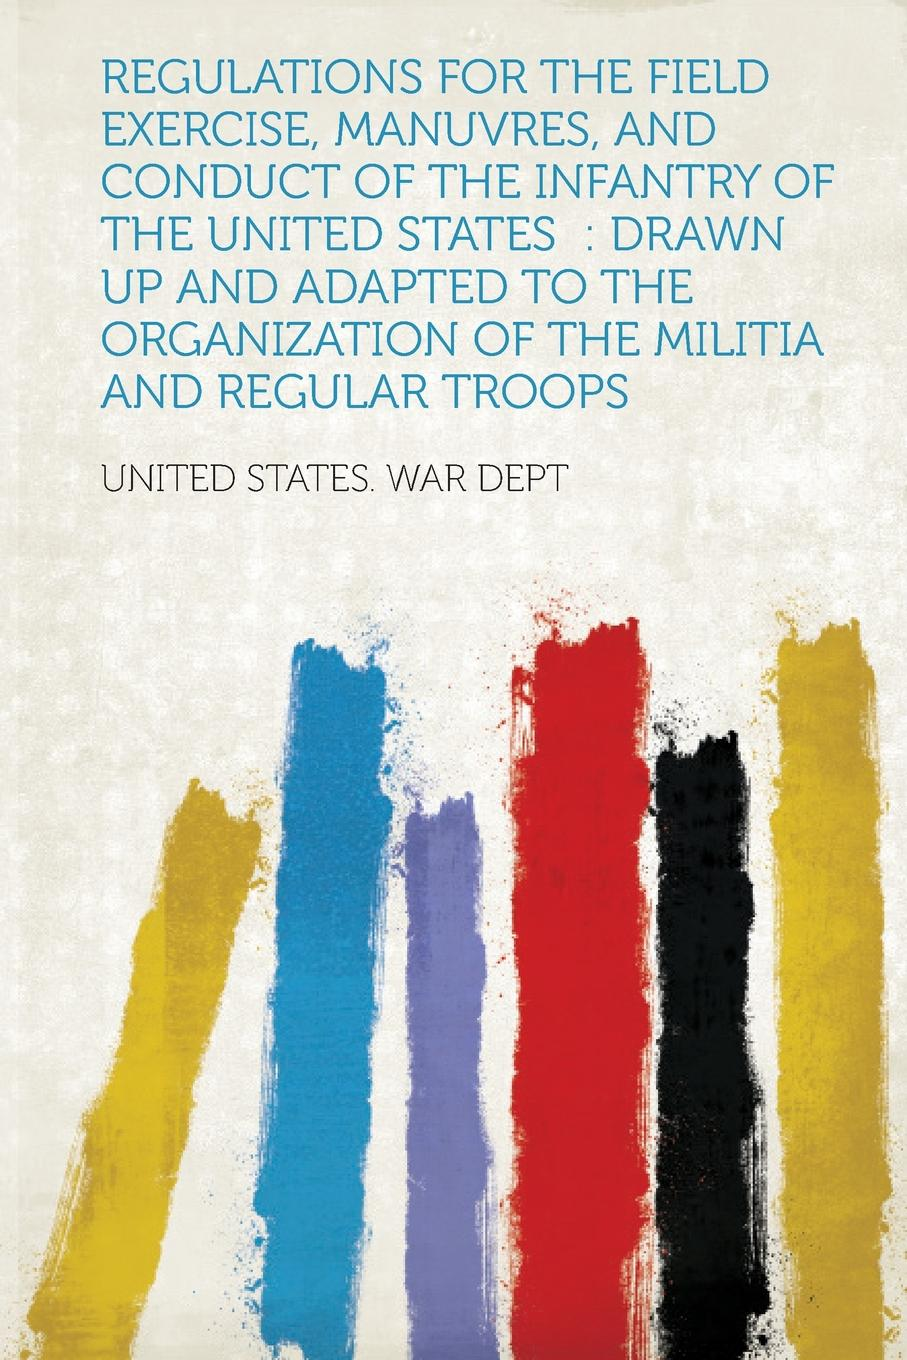 Regulations for the Field Exercise, Manuvres, and Conduct of the Infantry of the United States. Drawn Up and Adapted to the Organization of the Militi